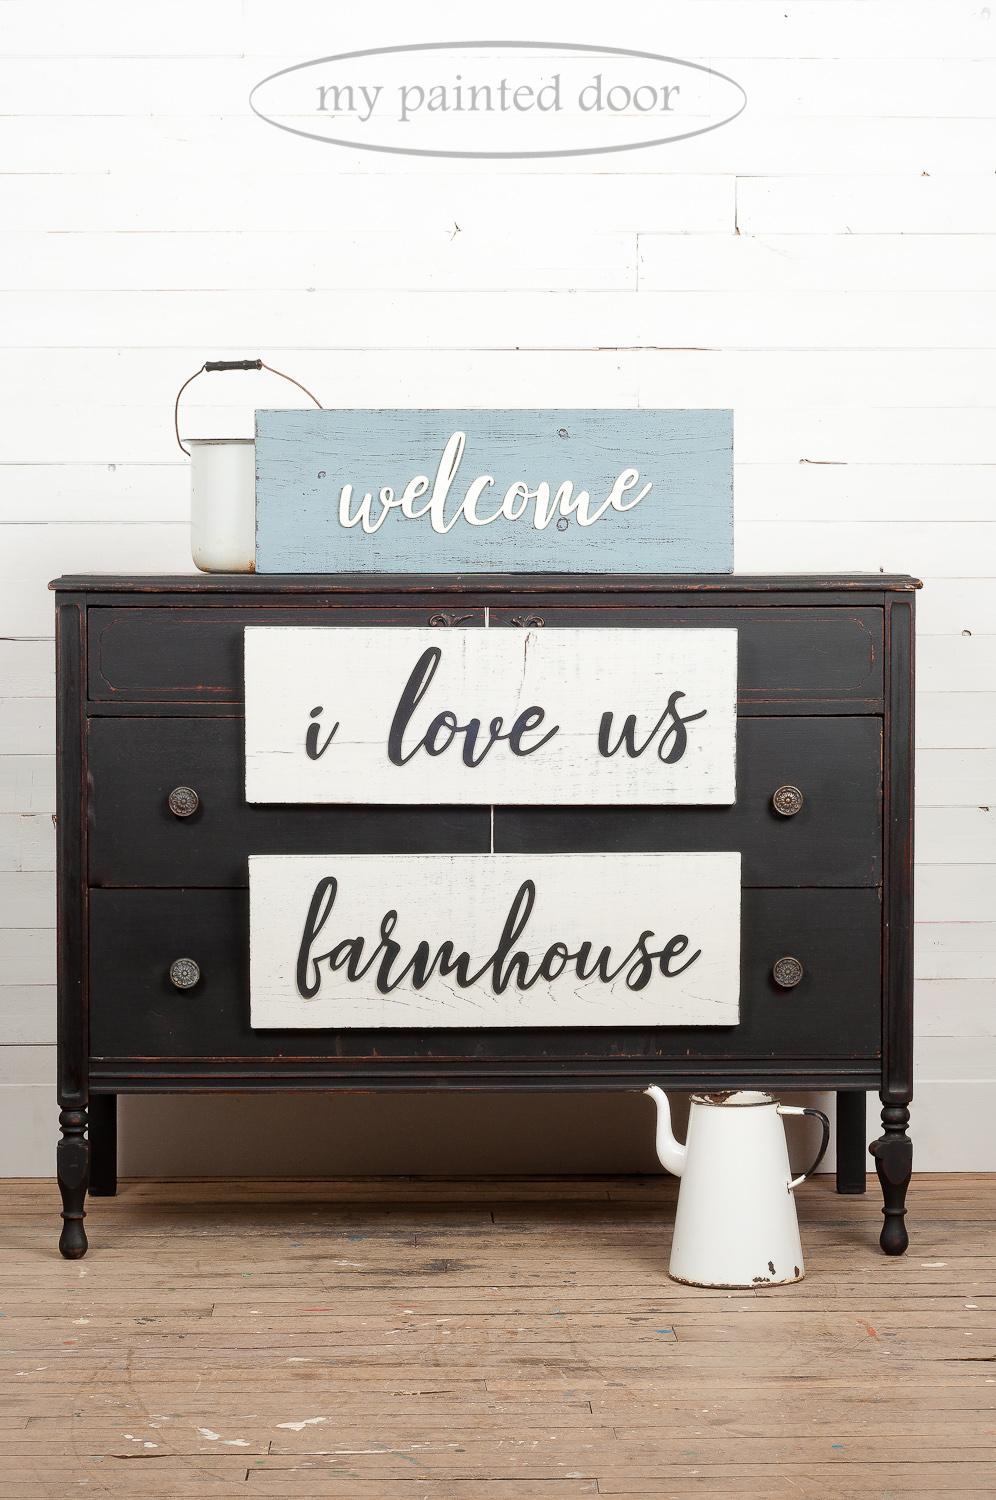 Dresser painted in Miss Mustard Seed's Milk Paint in the colour Typewriter. Signs painted in Bergere and Farmhouse White.